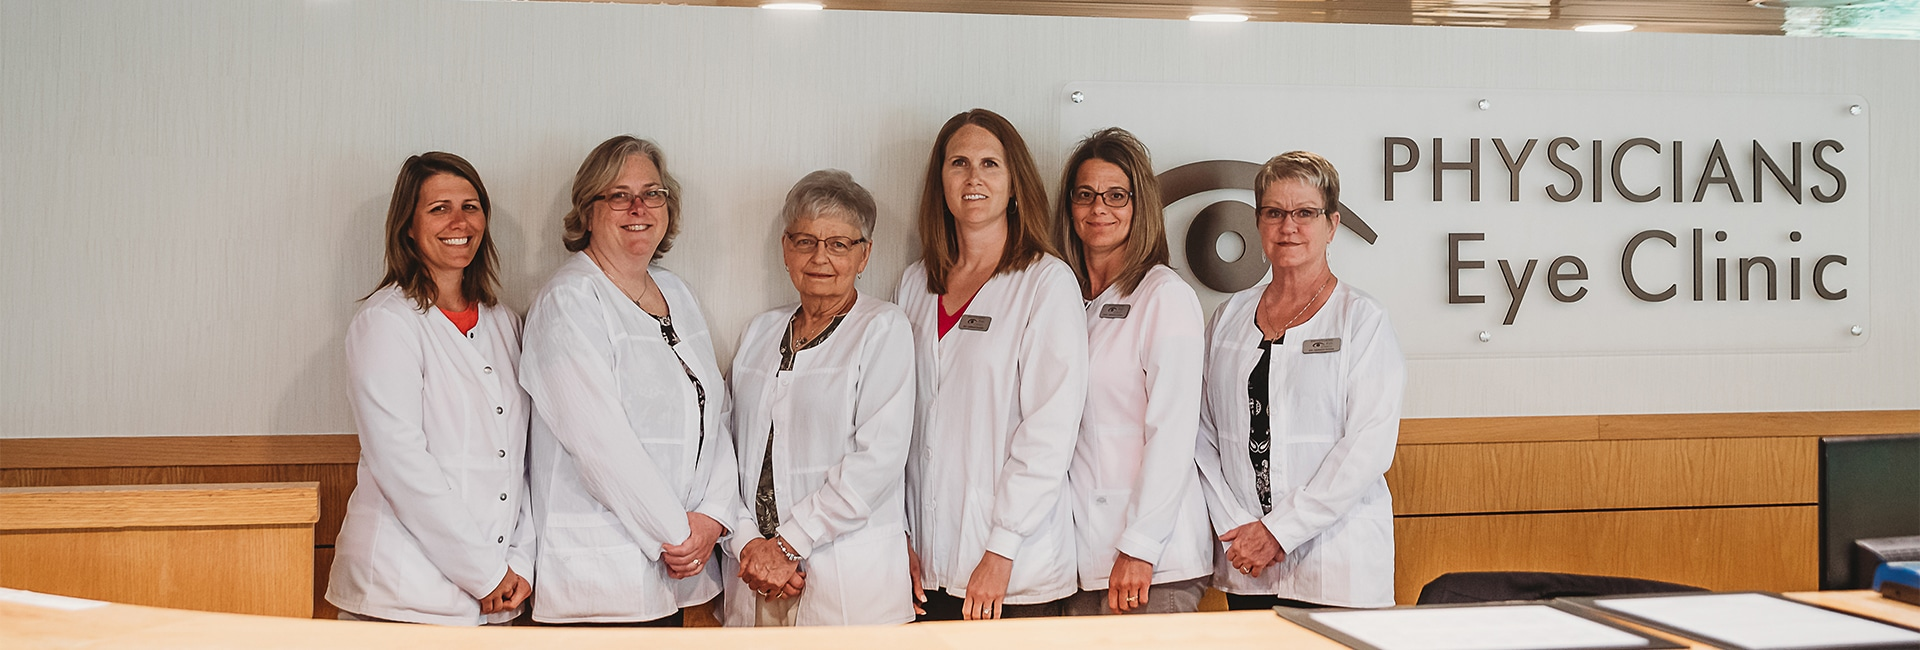 About | Physicians Eye Clinic